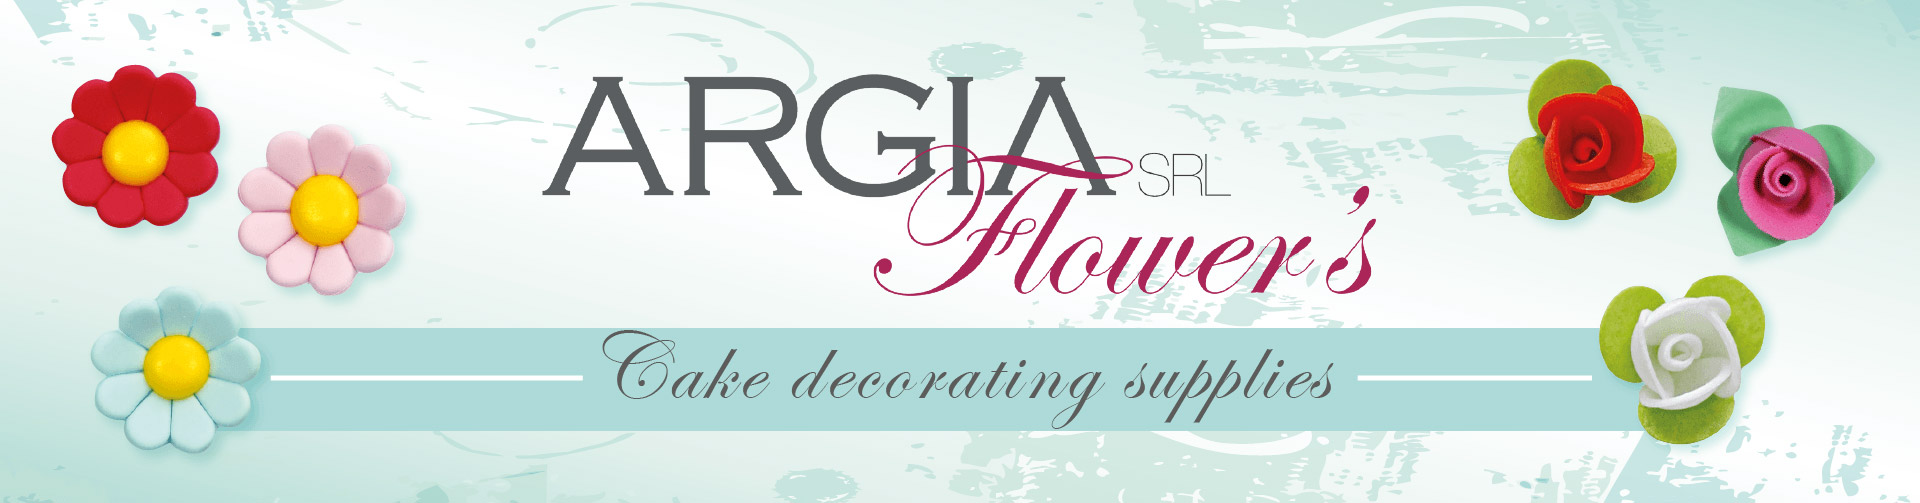 Argia Flowers - Decorations For Pastry